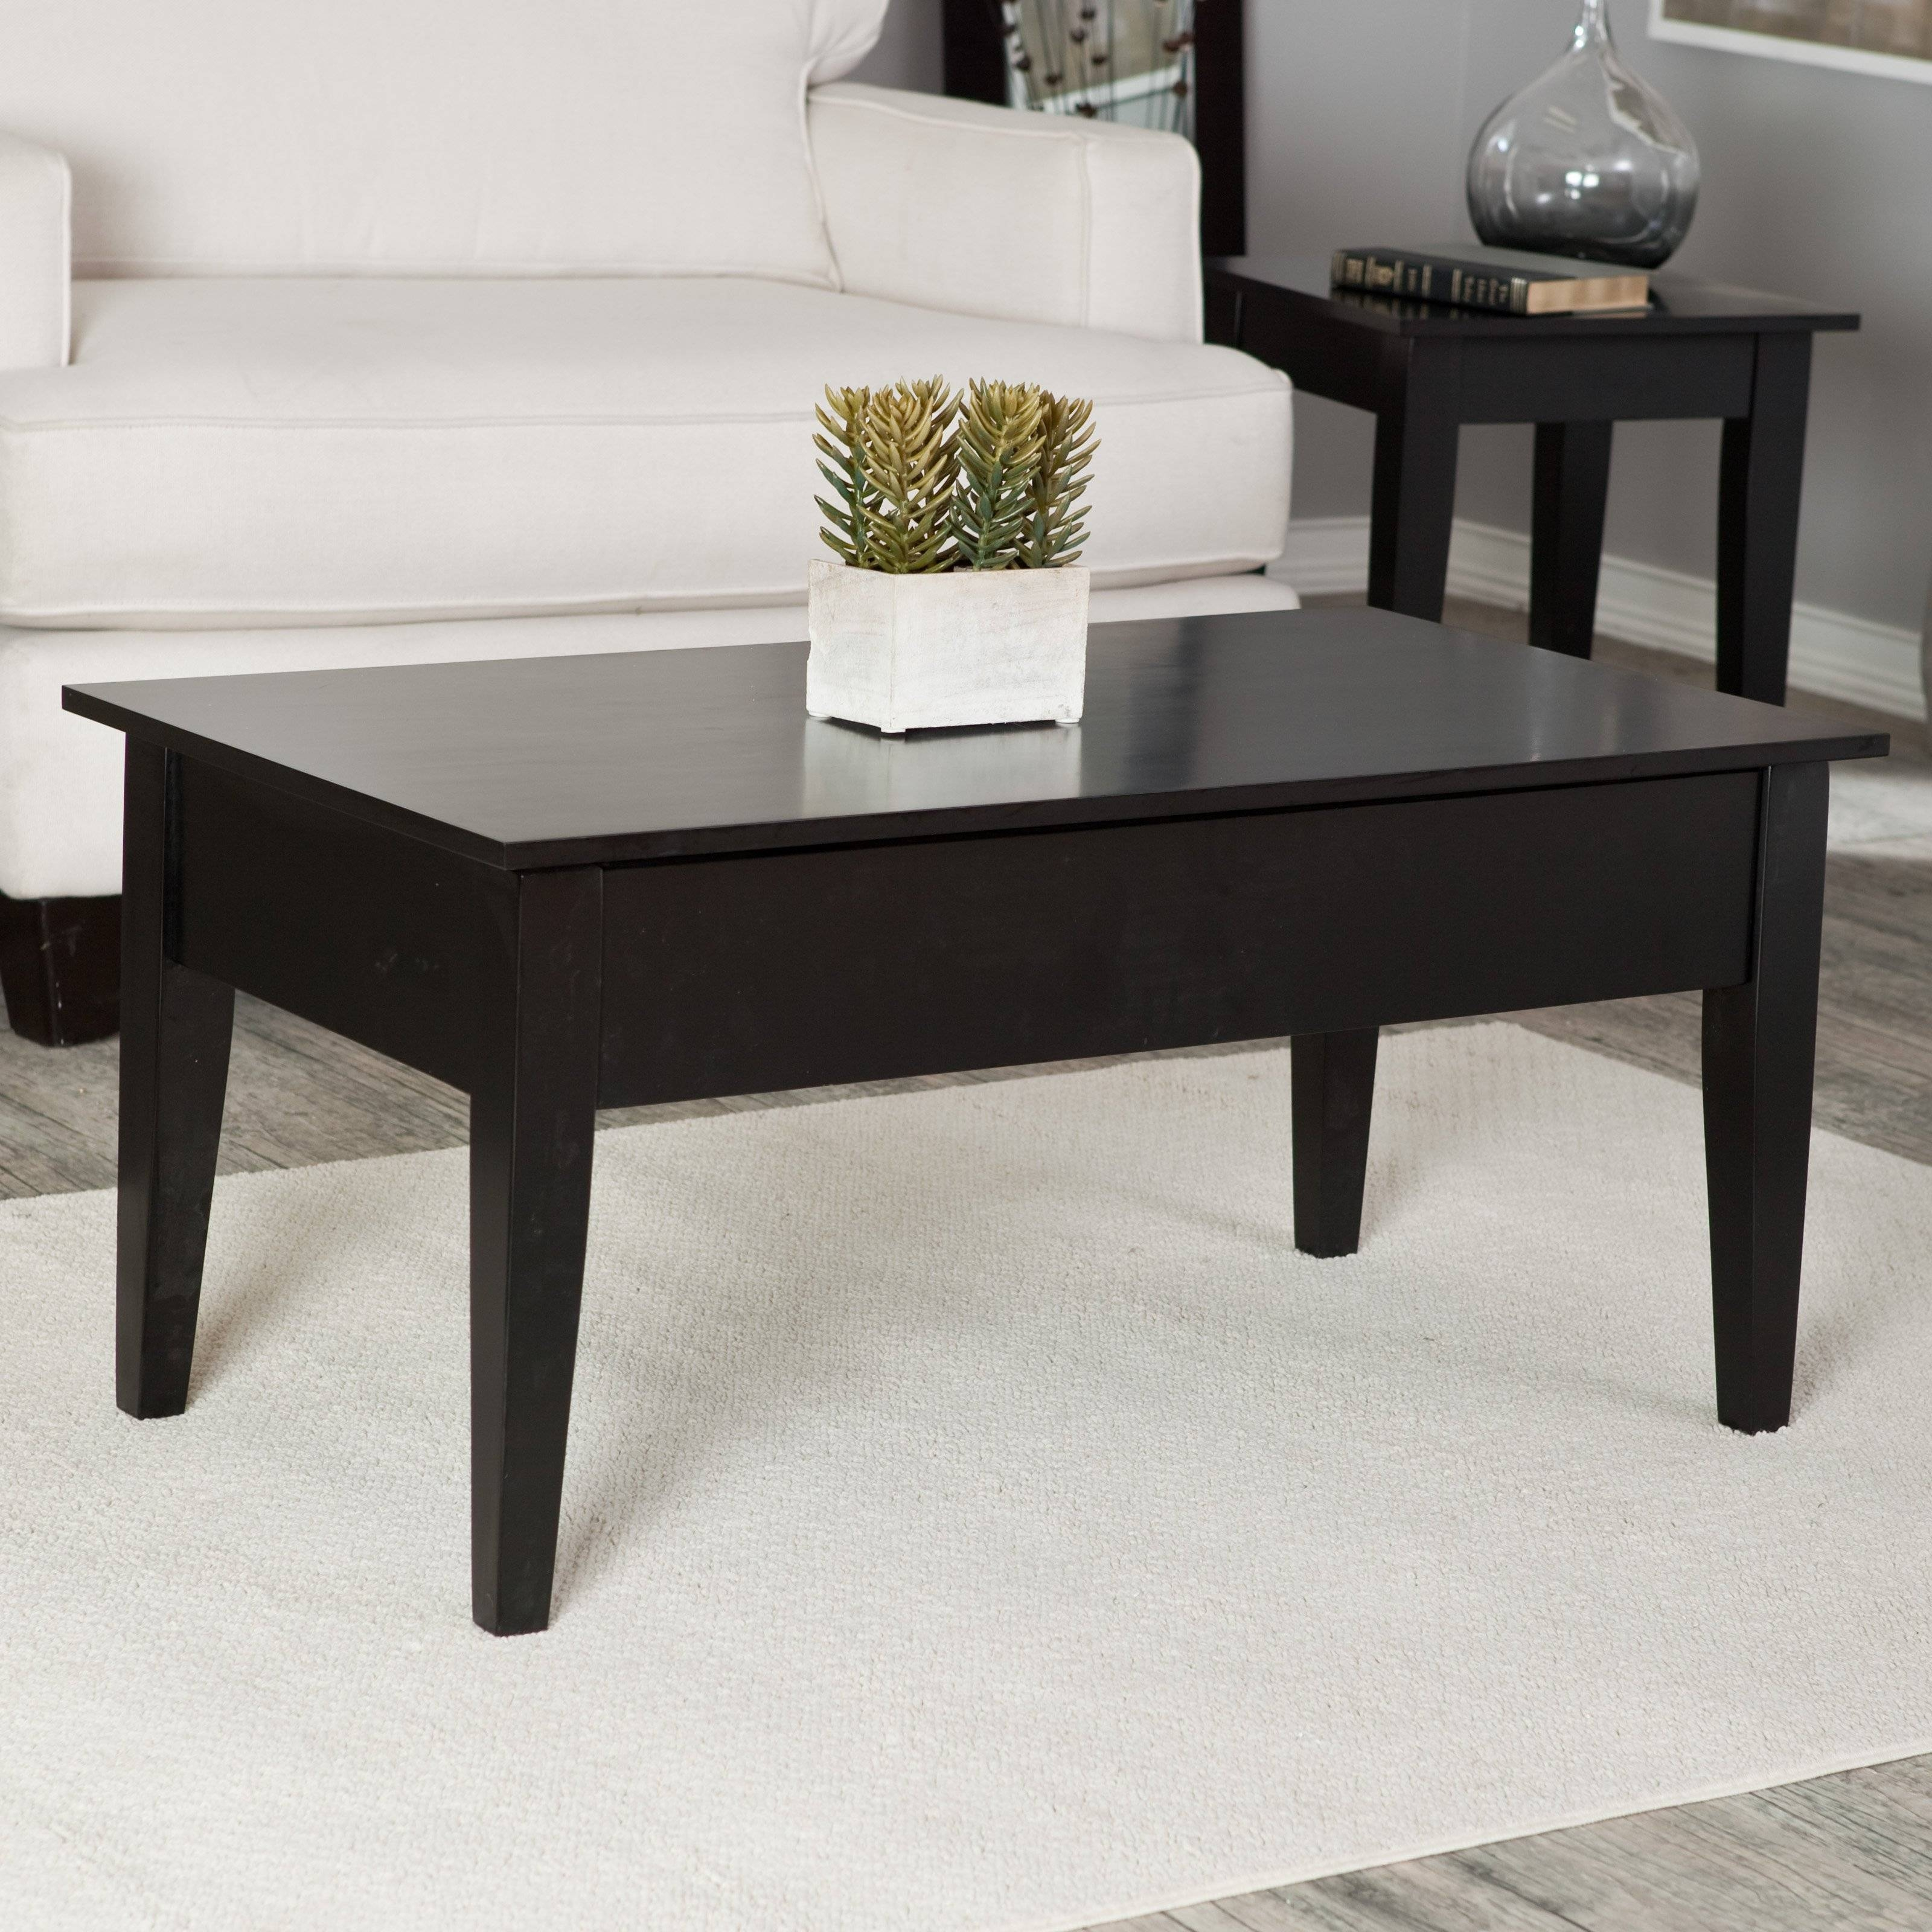 Turner Lift Top Coffee Table - Black | Hayneedle with Black Coffee Tables (Image 30 of 30)